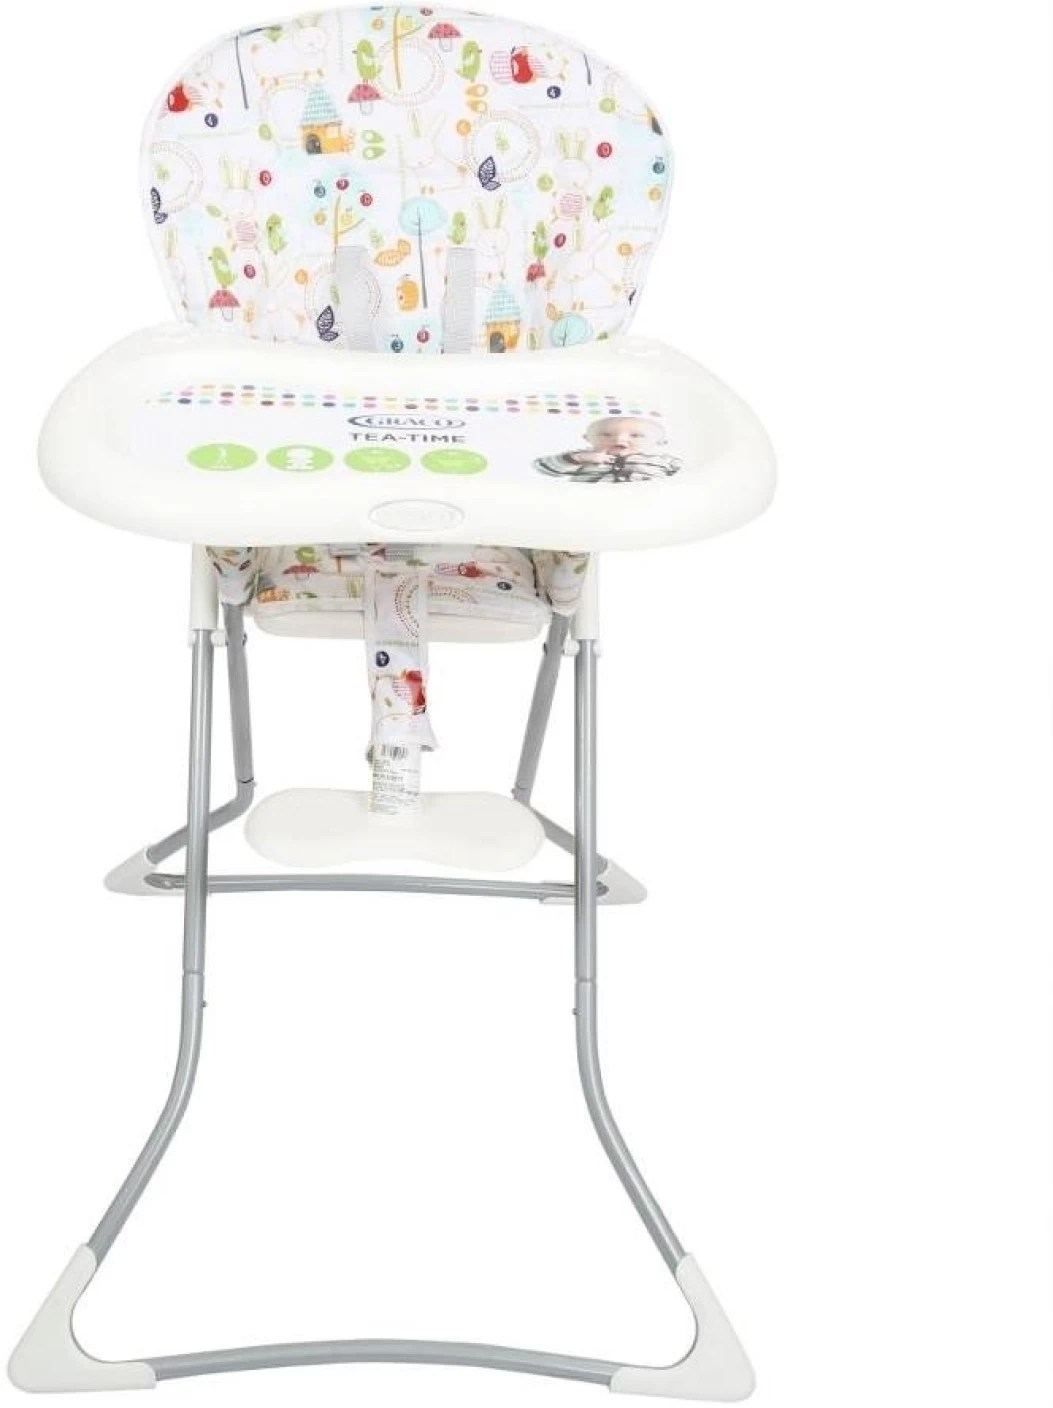 graco high chair cover uk classy bean bag chairs tea time hide and seek buy baby care